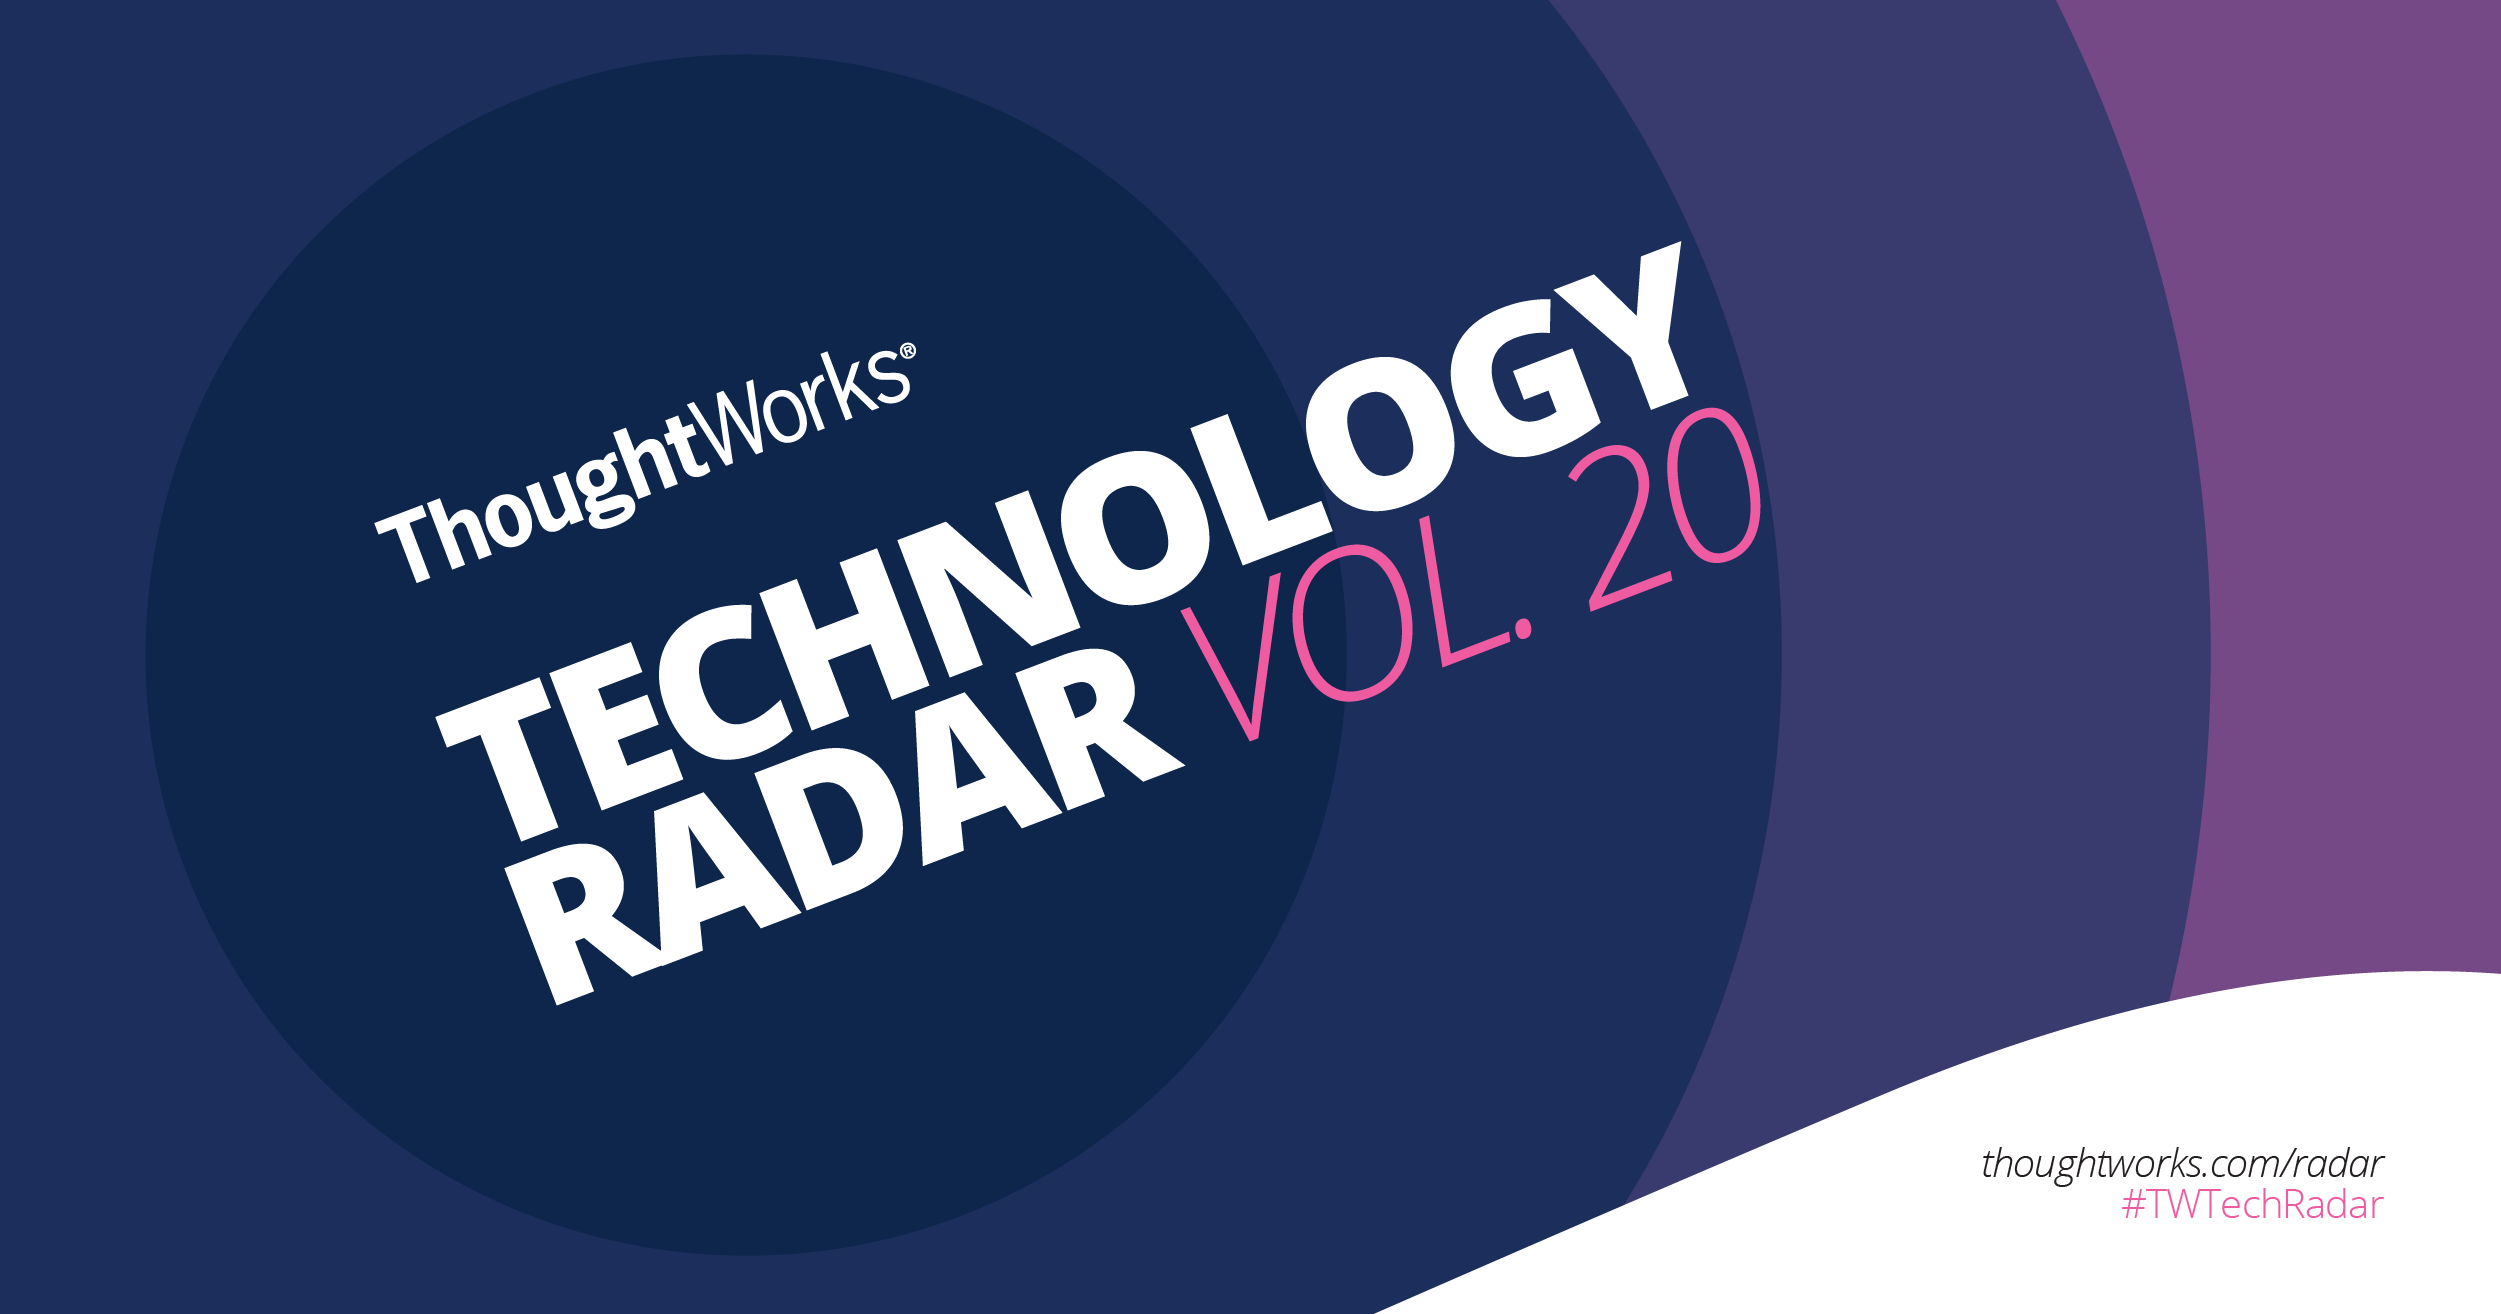 Technology Radar | An opinionated guide to technology